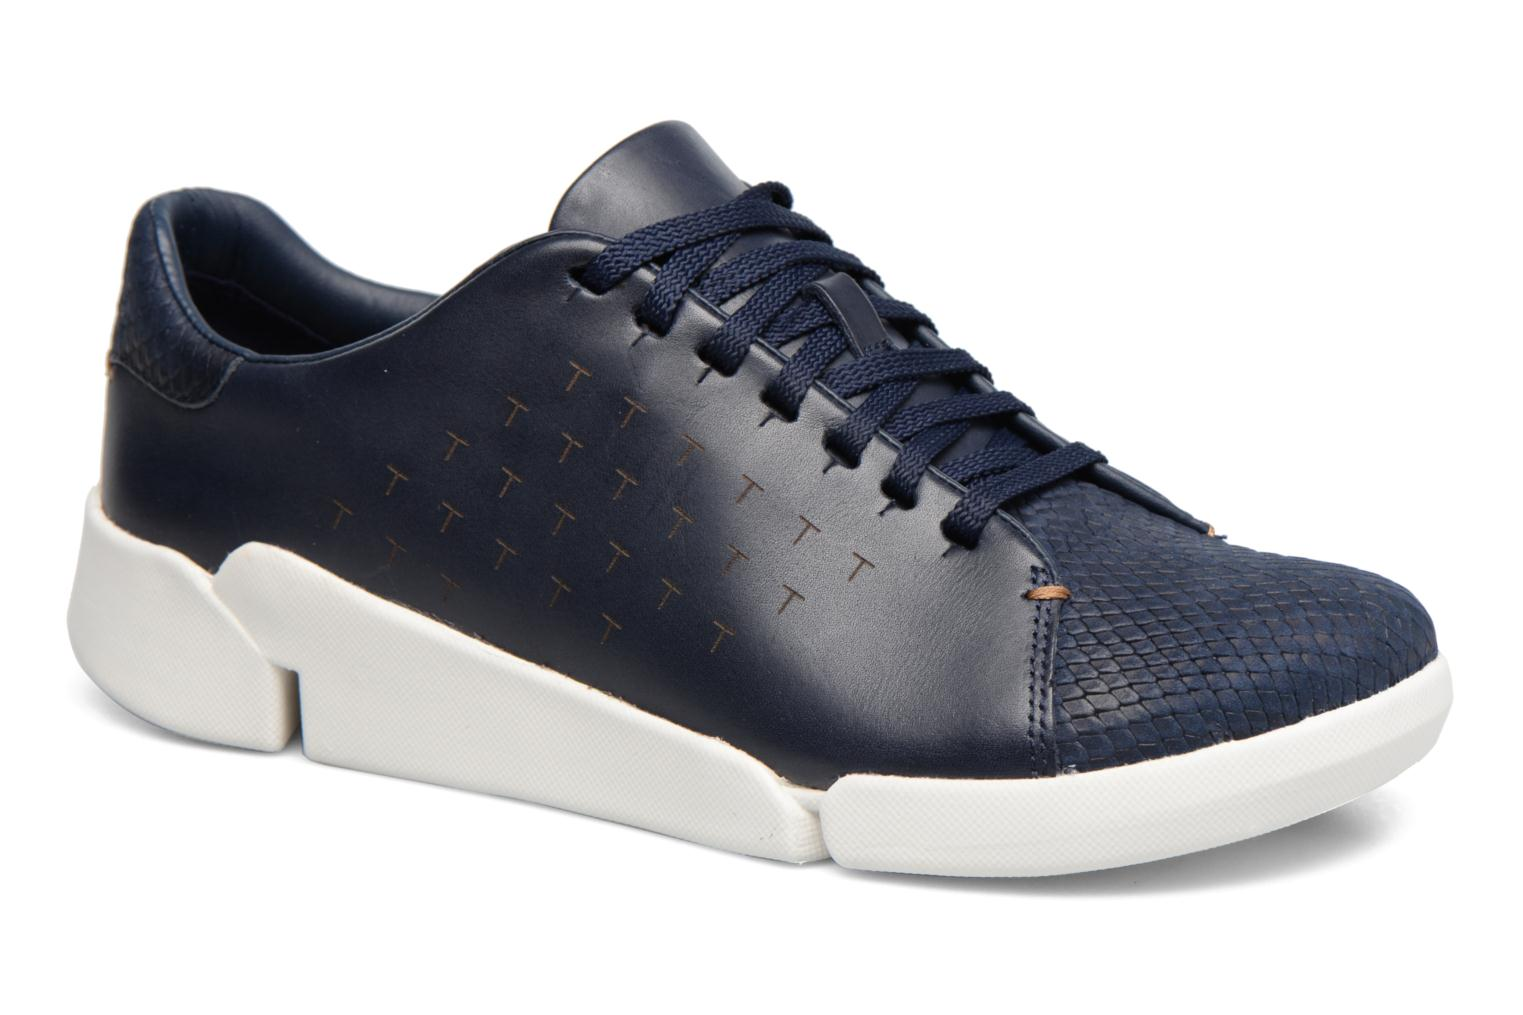 Marques Chaussure femme Clarks femme Tri Abby Navy leather